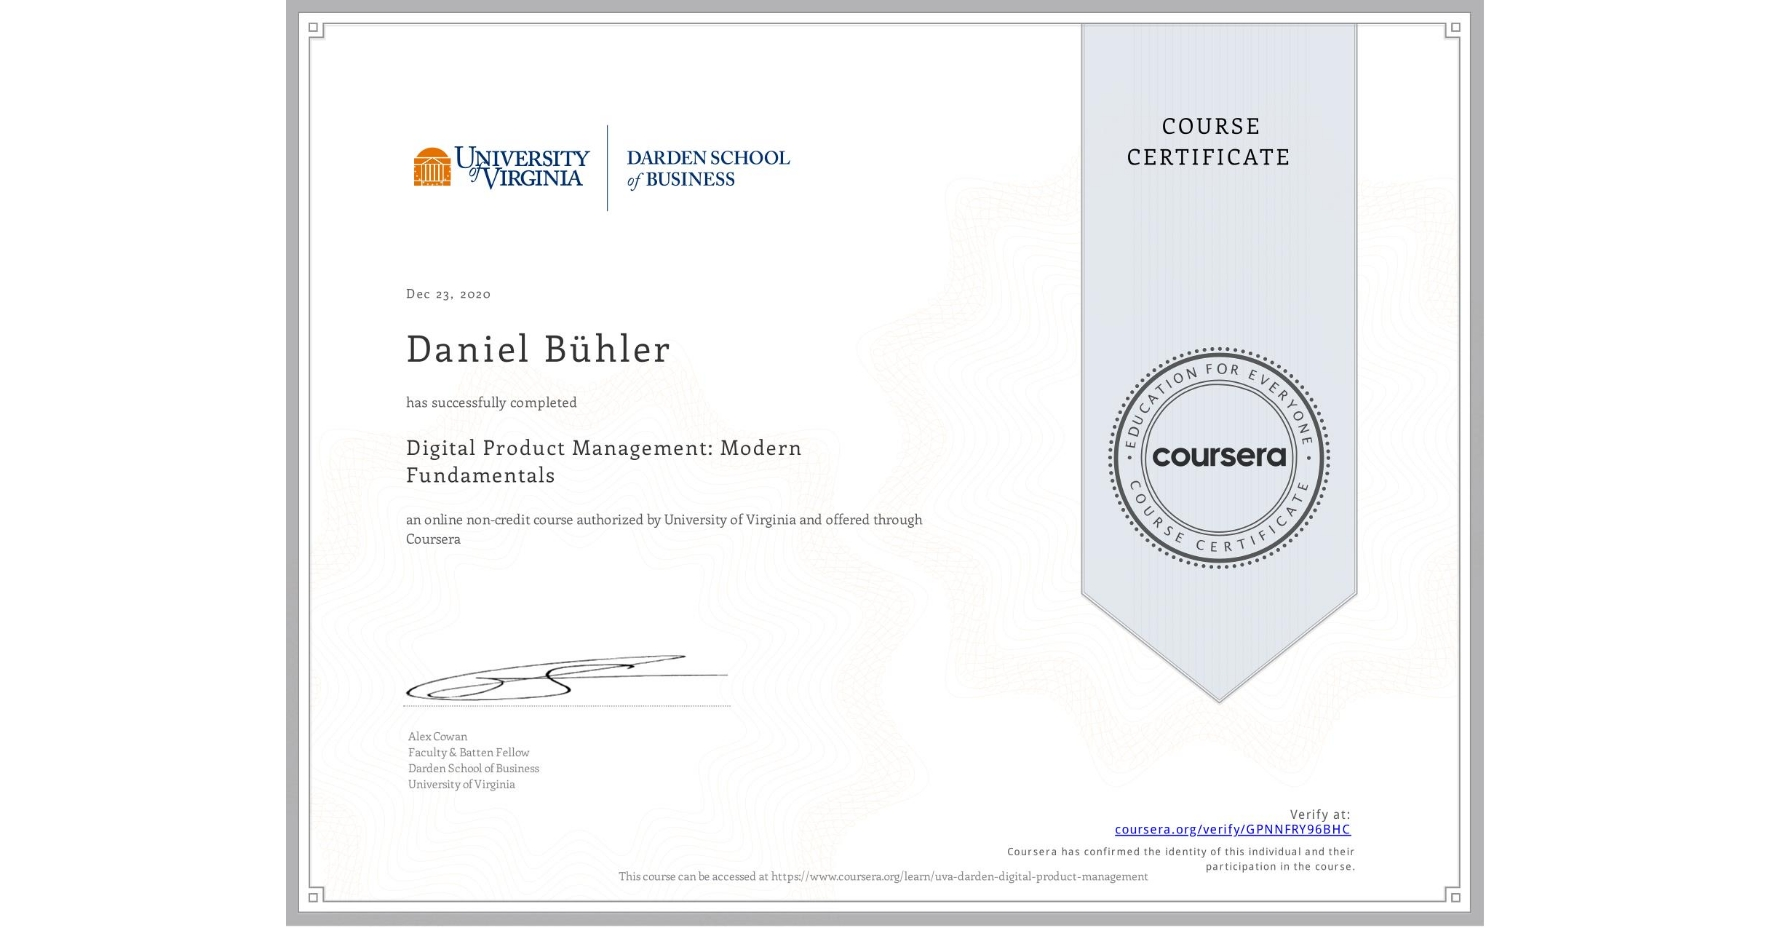 View certificate for Daniel Bühler, Digital Product Management: Modern Fundamentals, an online non-credit course authorized by University of Virginia and offered through Coursera